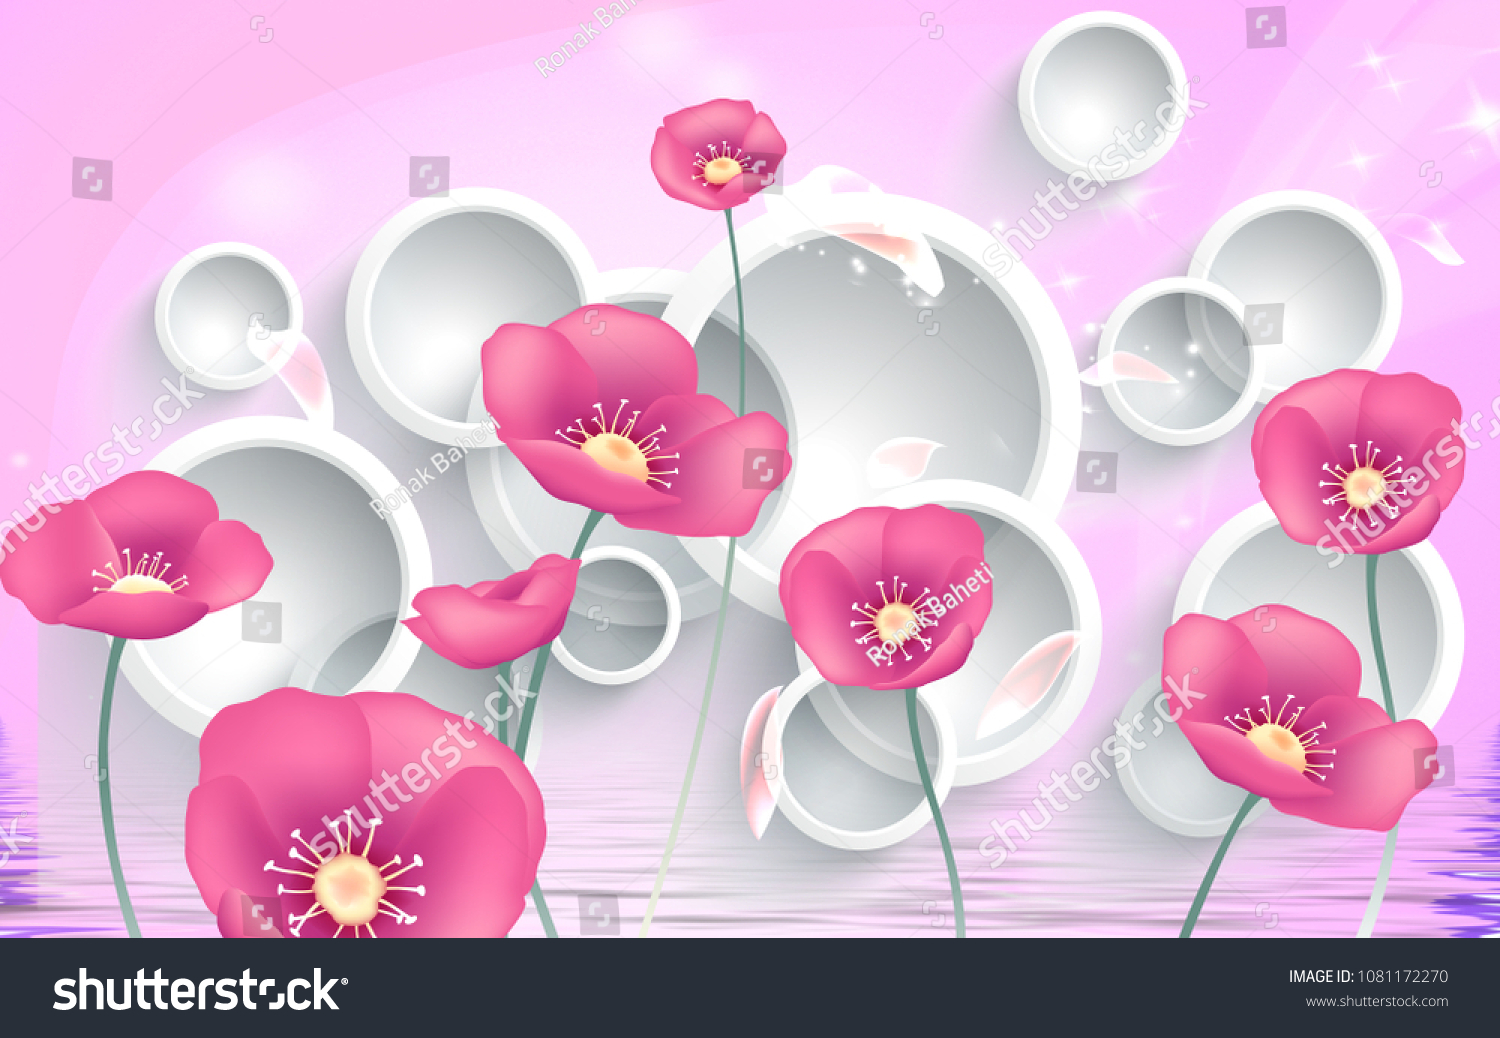 3 D Pink Flowers On White Circles Stock Illustration 1081172270